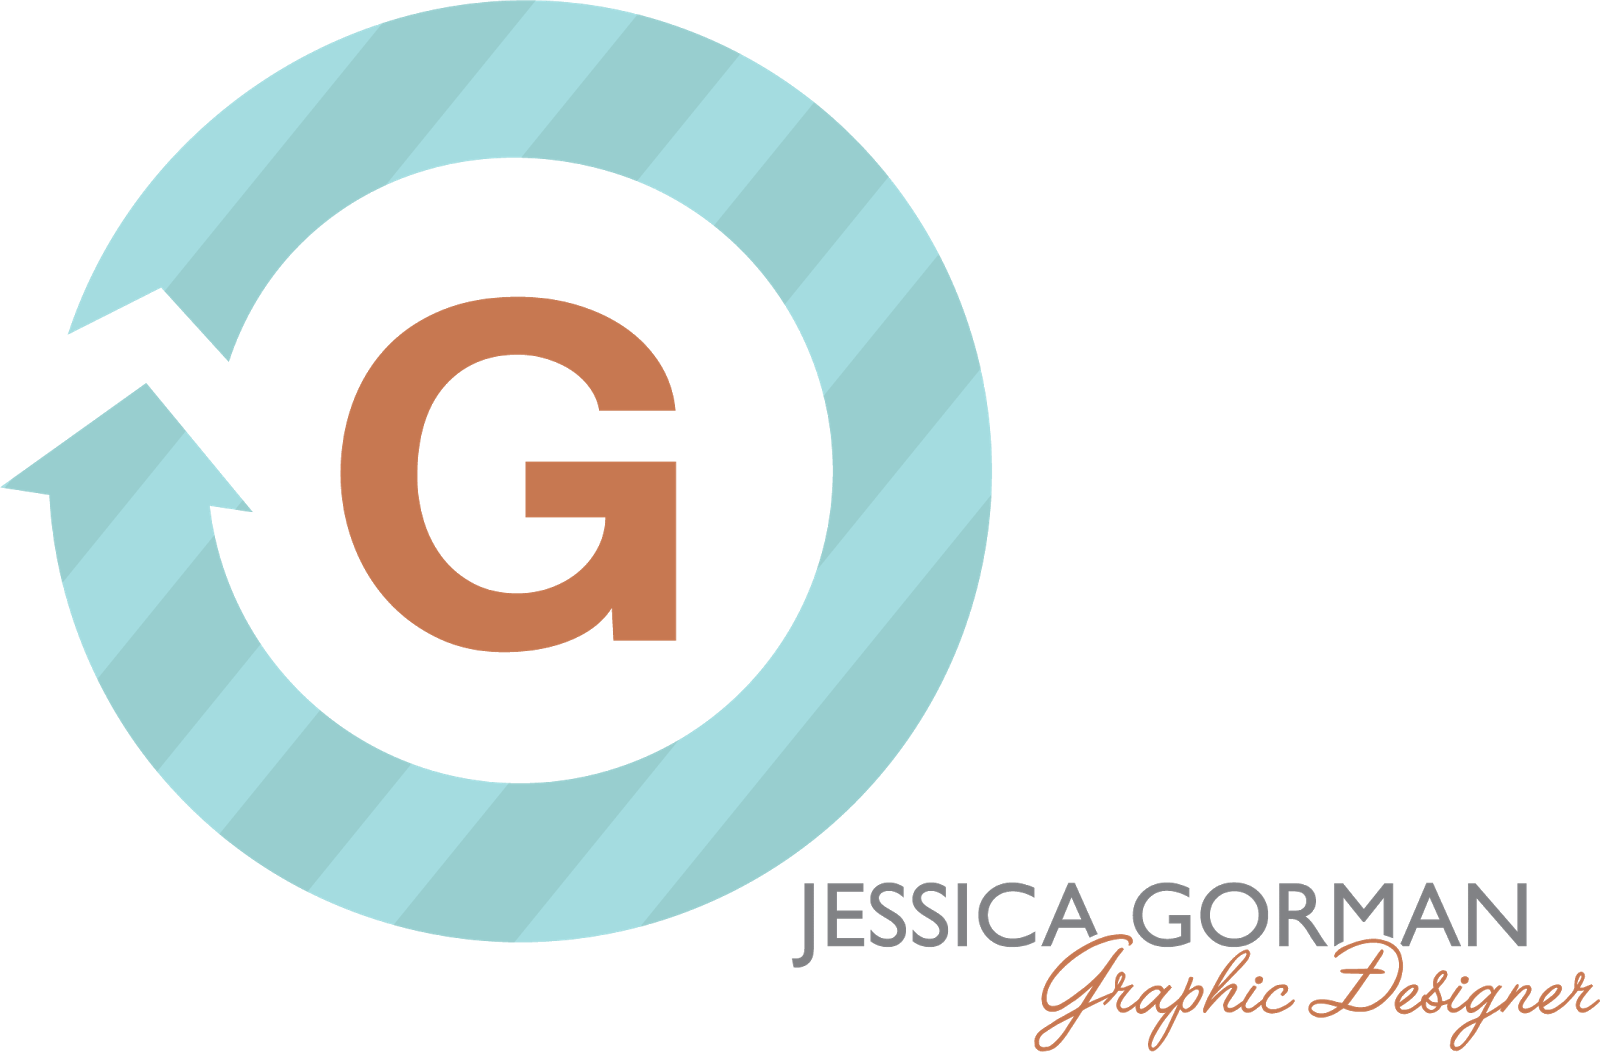 Jessica Gorman Graphic Design